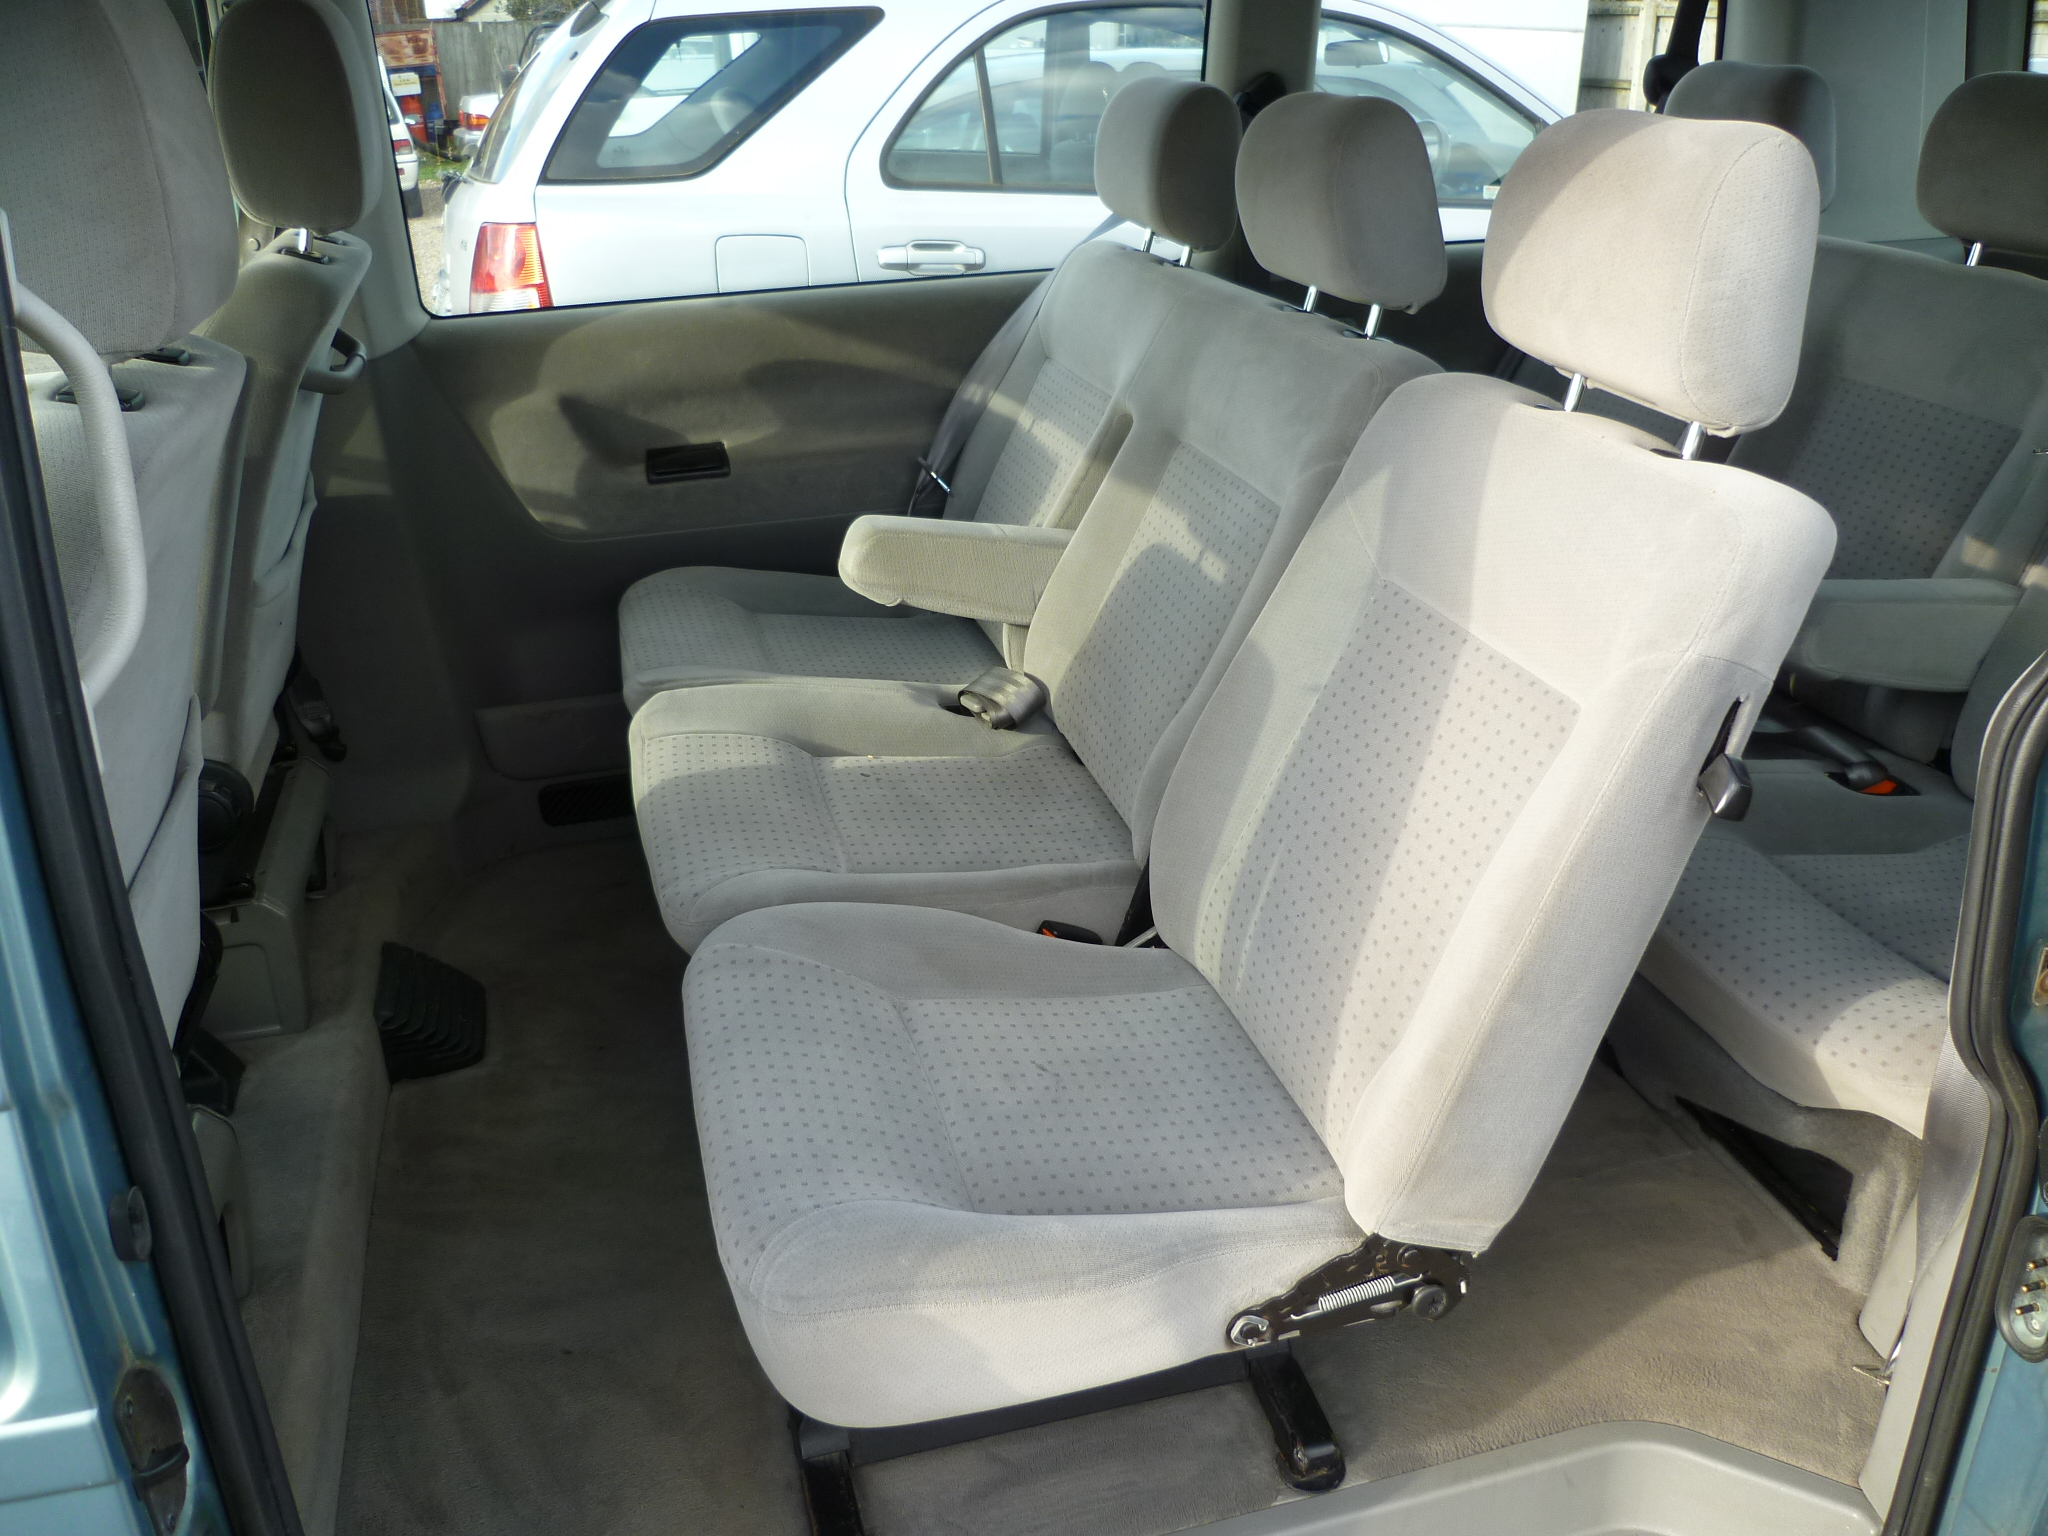 VW Caravelle 2.5TDI Automatic 007